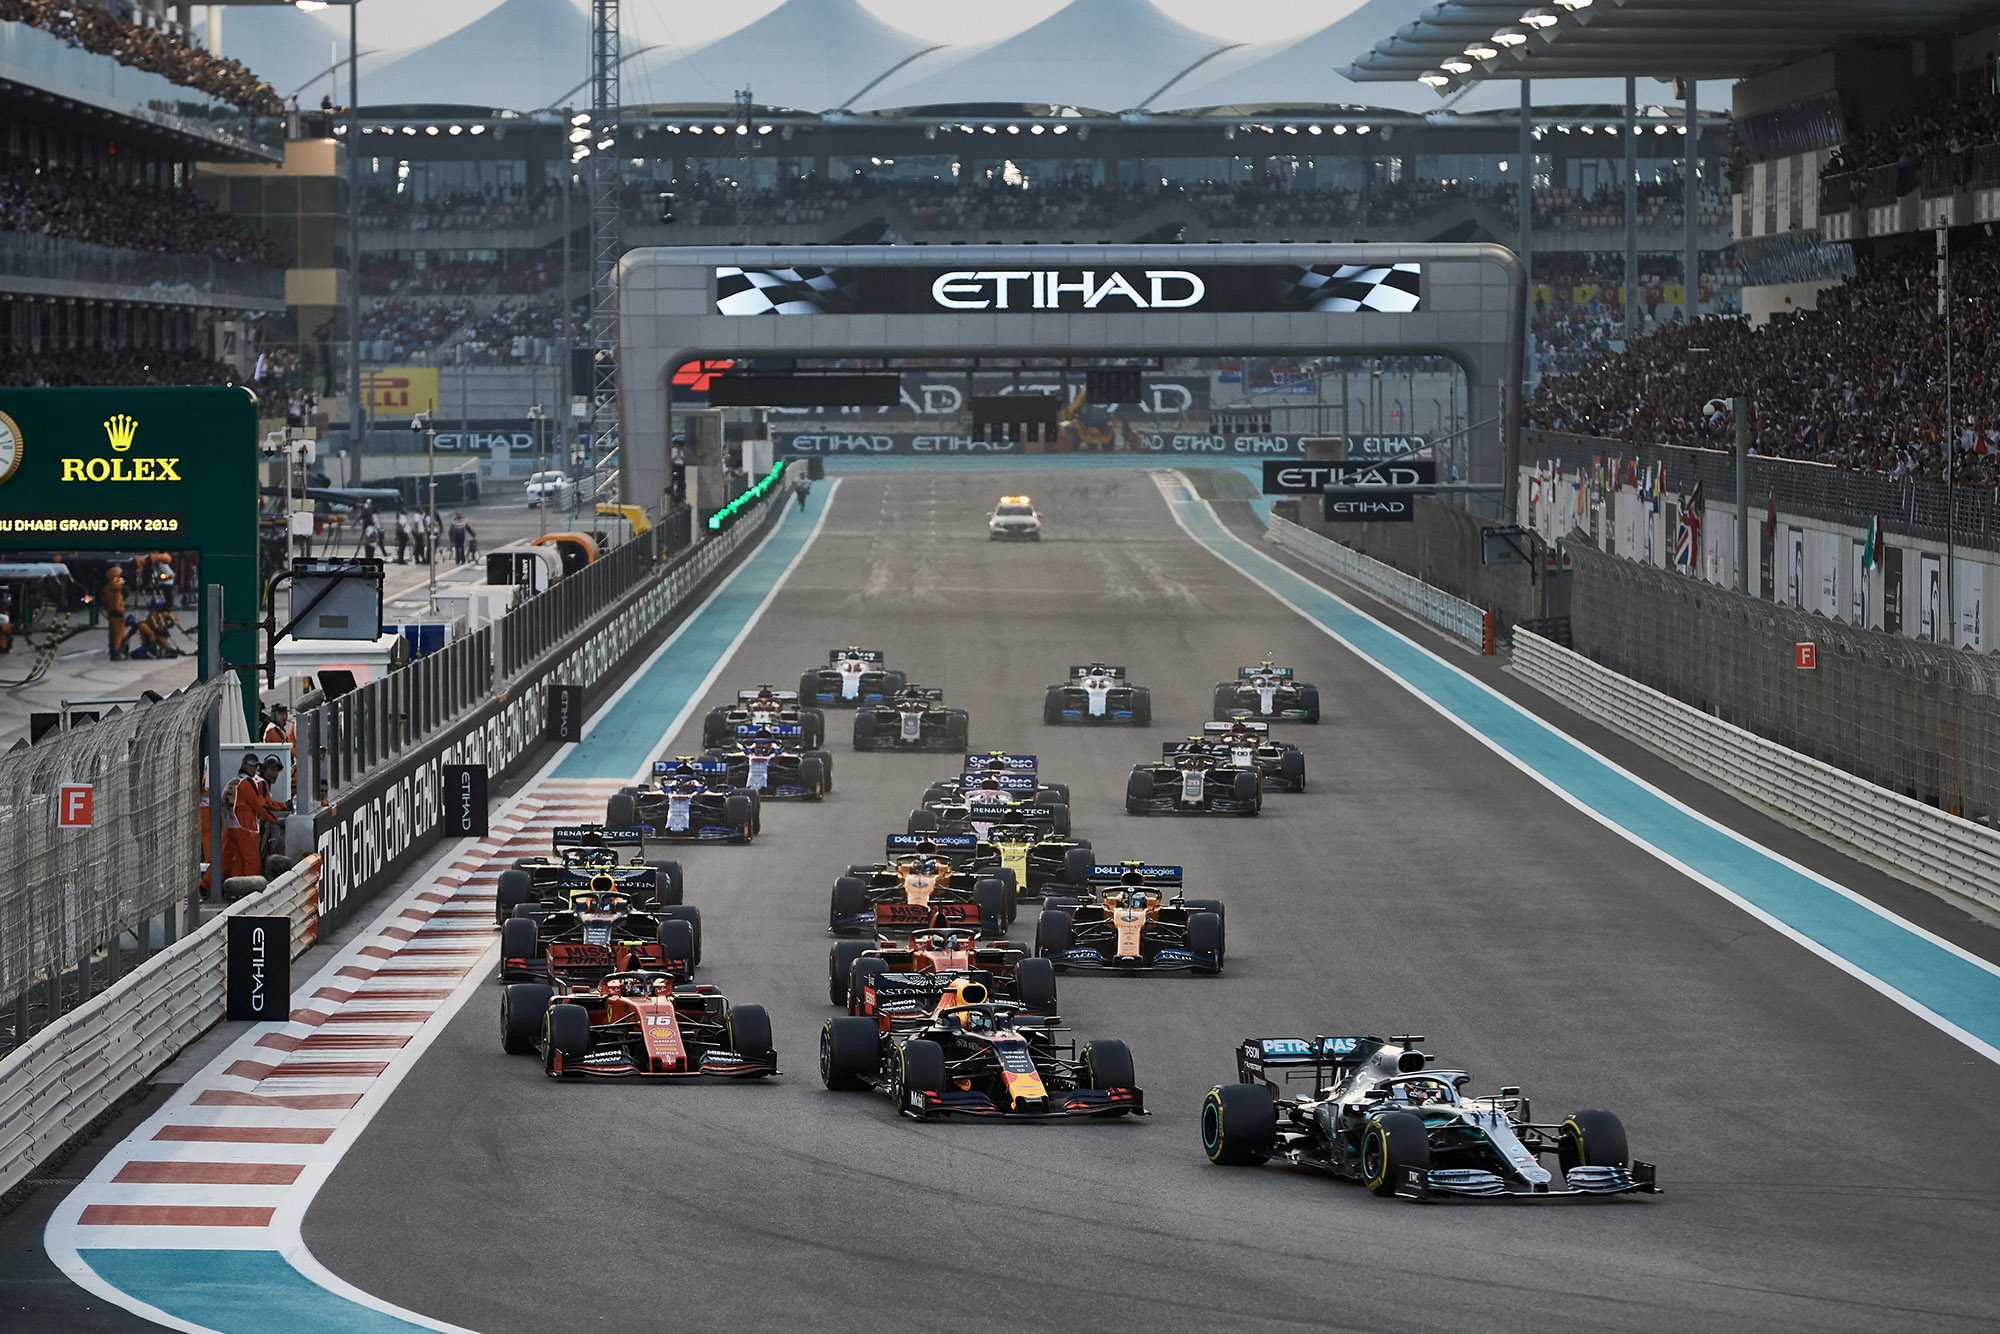 Lewis Hamilton leads at the start of the 2019 Abu Dhabi Grand Prix